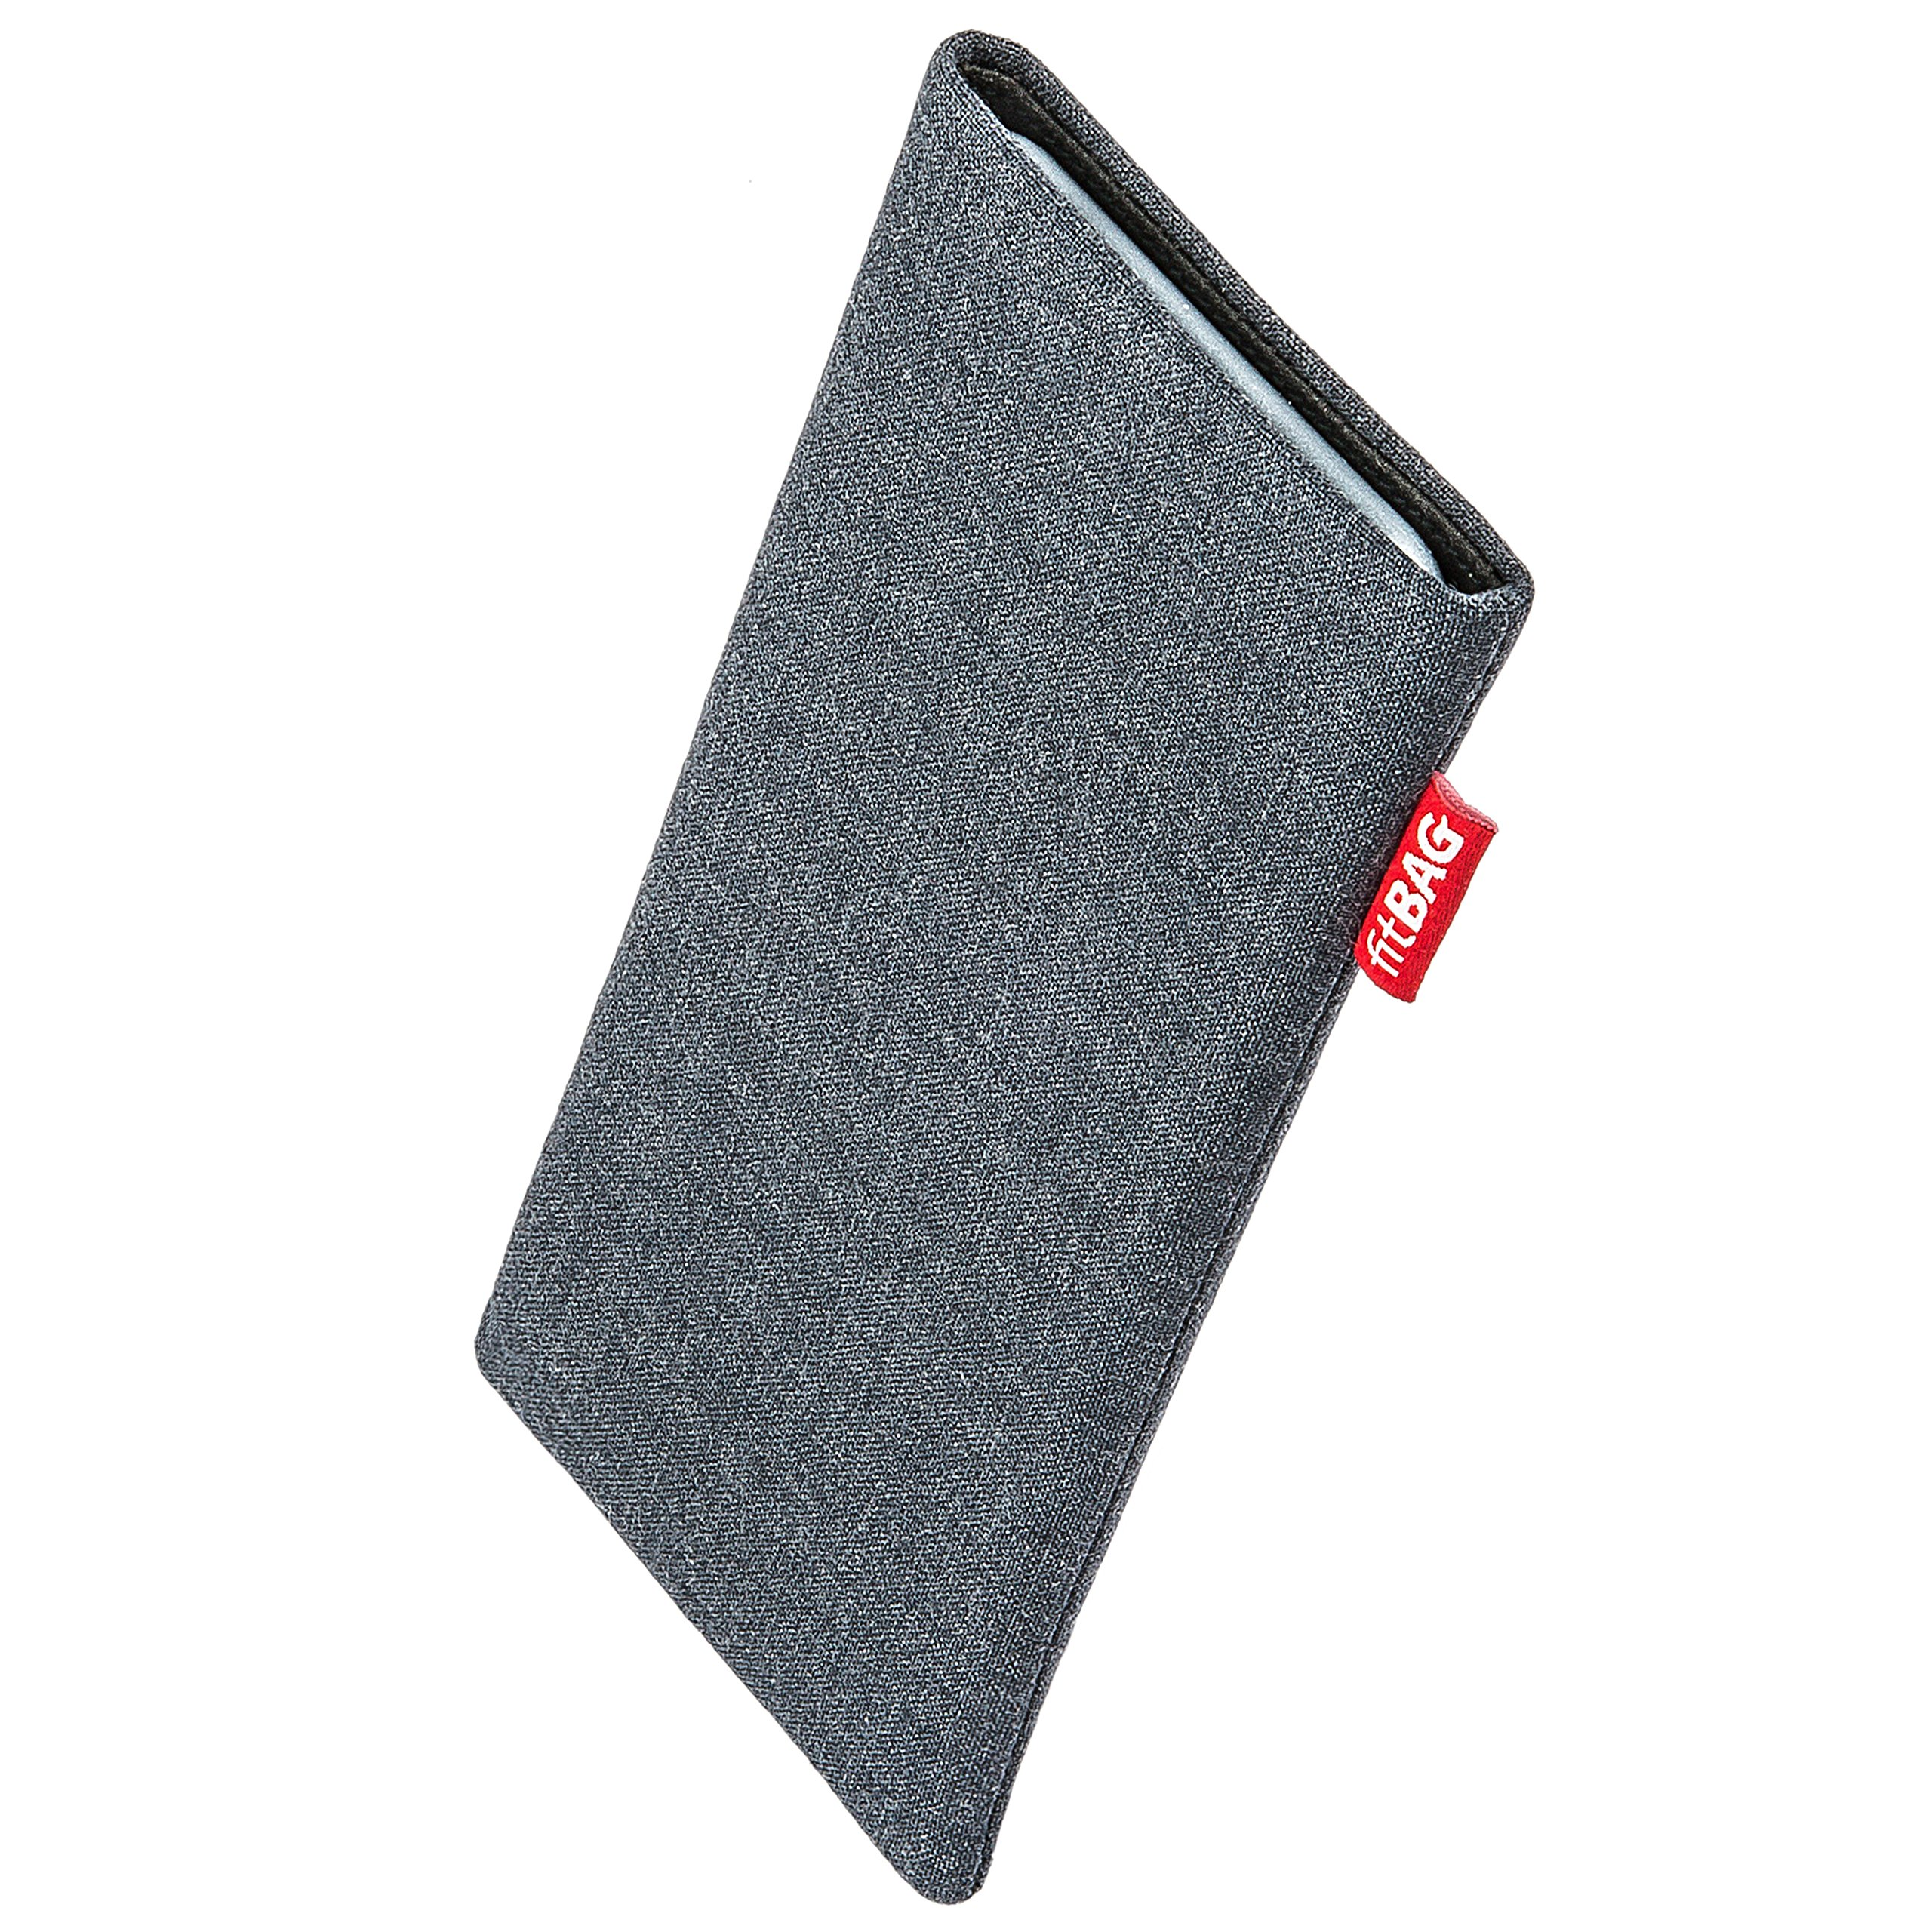 fitBAG Jive Gray Custom Tailored Sleeve for Apple iPhone X/Xs | Made in Germany | Fine Suit Fabric Pouch case Cover with Microfibre Lining for Display Cleaning by fitBAG